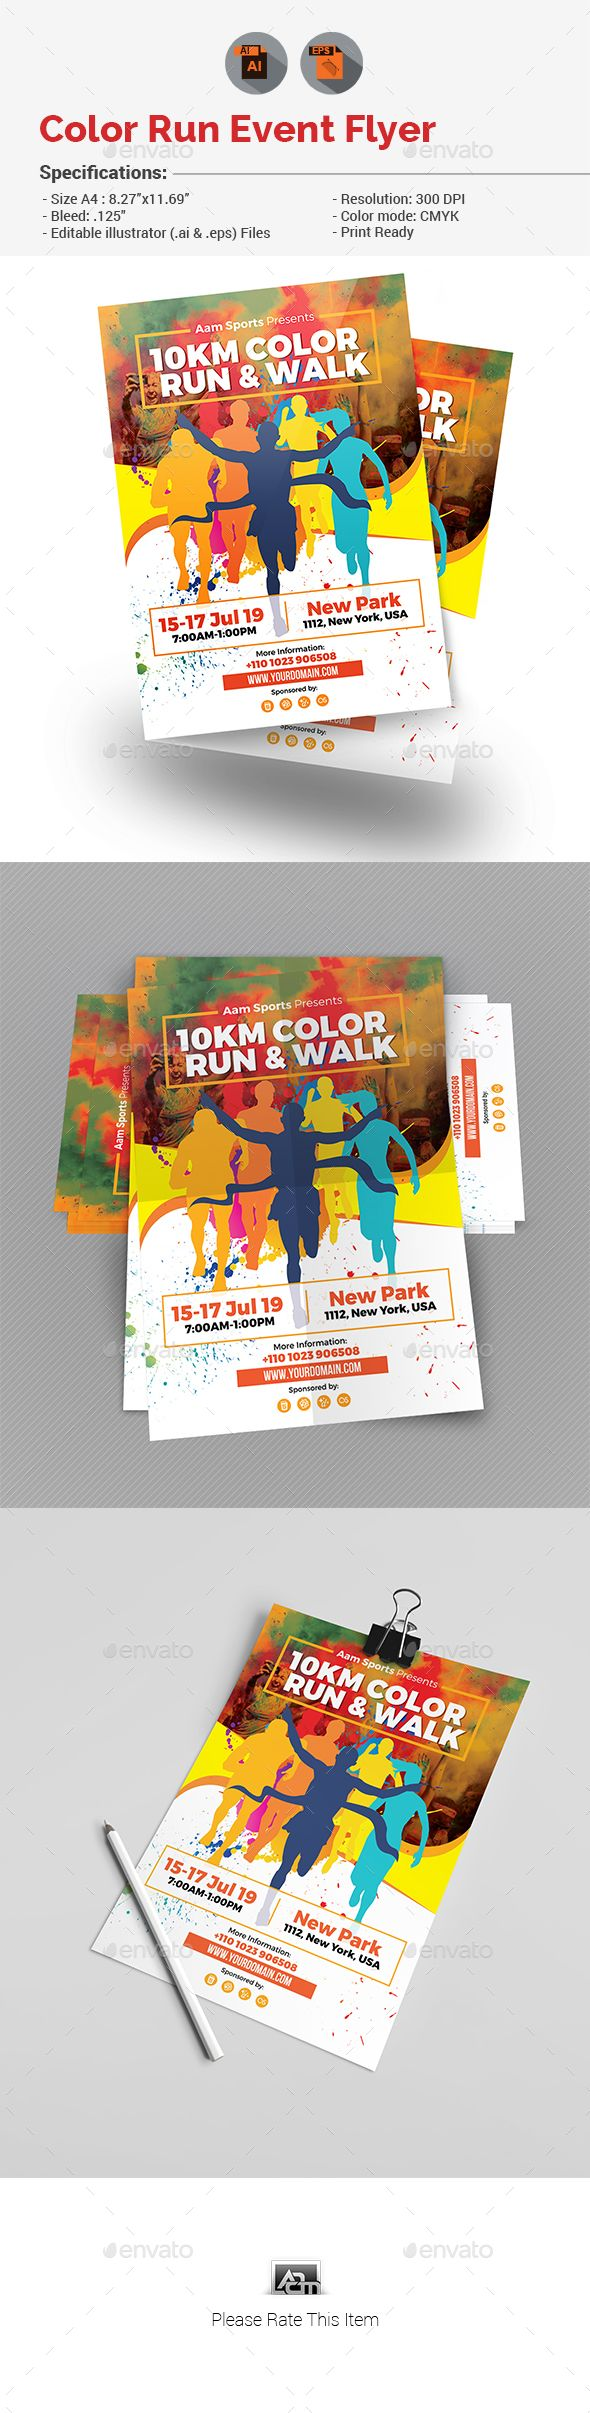 Color Run Event Flyer Vector EPS Running Splash O Download